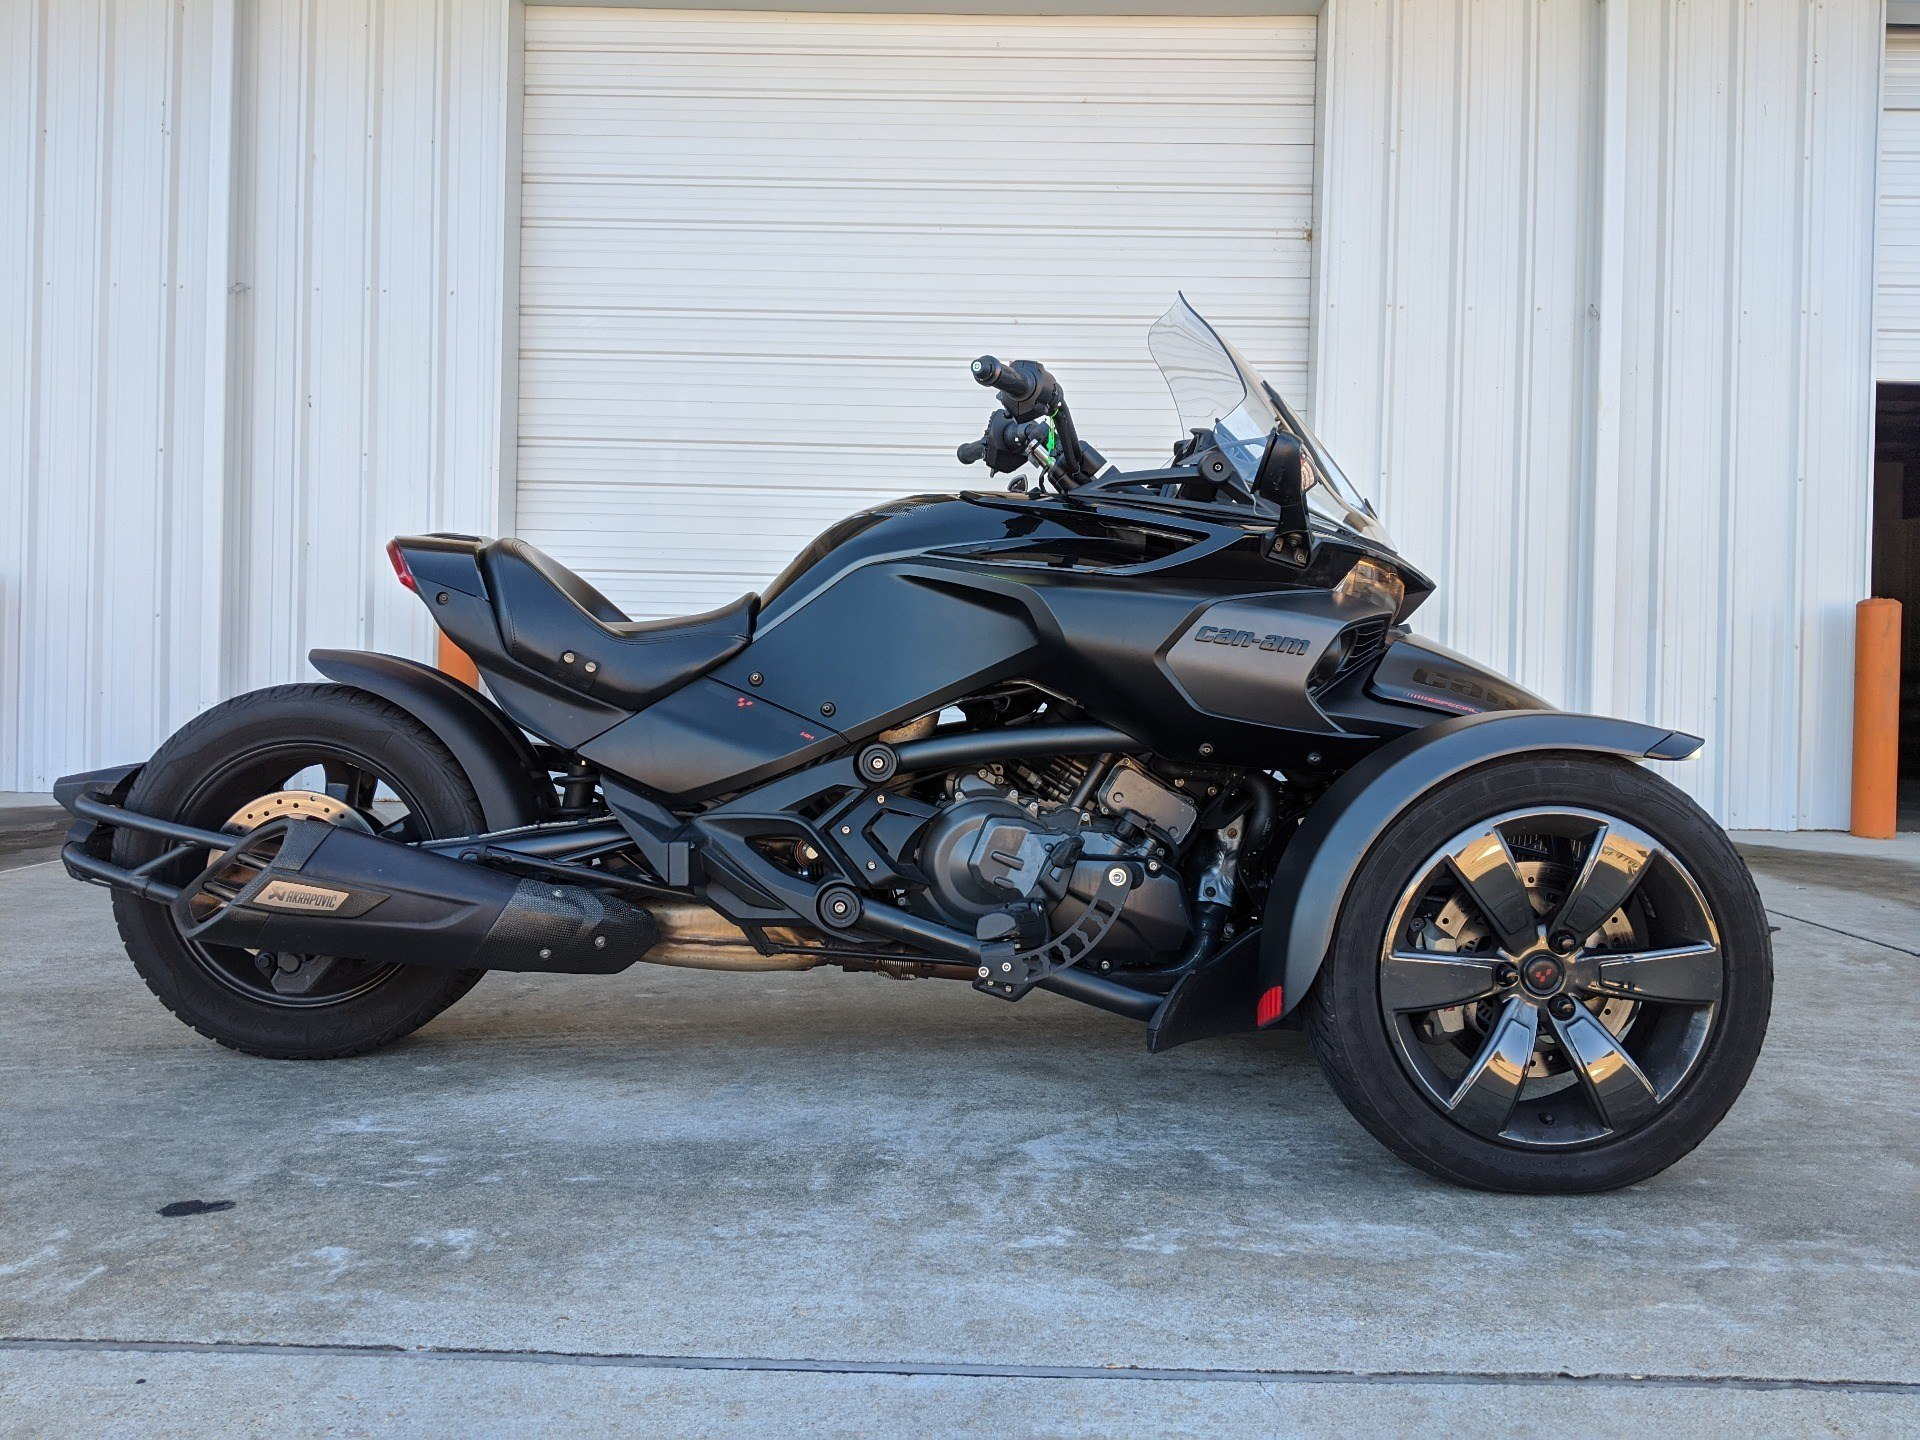 2016 Can-Am Spyder F3 Limited in Monroe, Louisiana - Photo 1